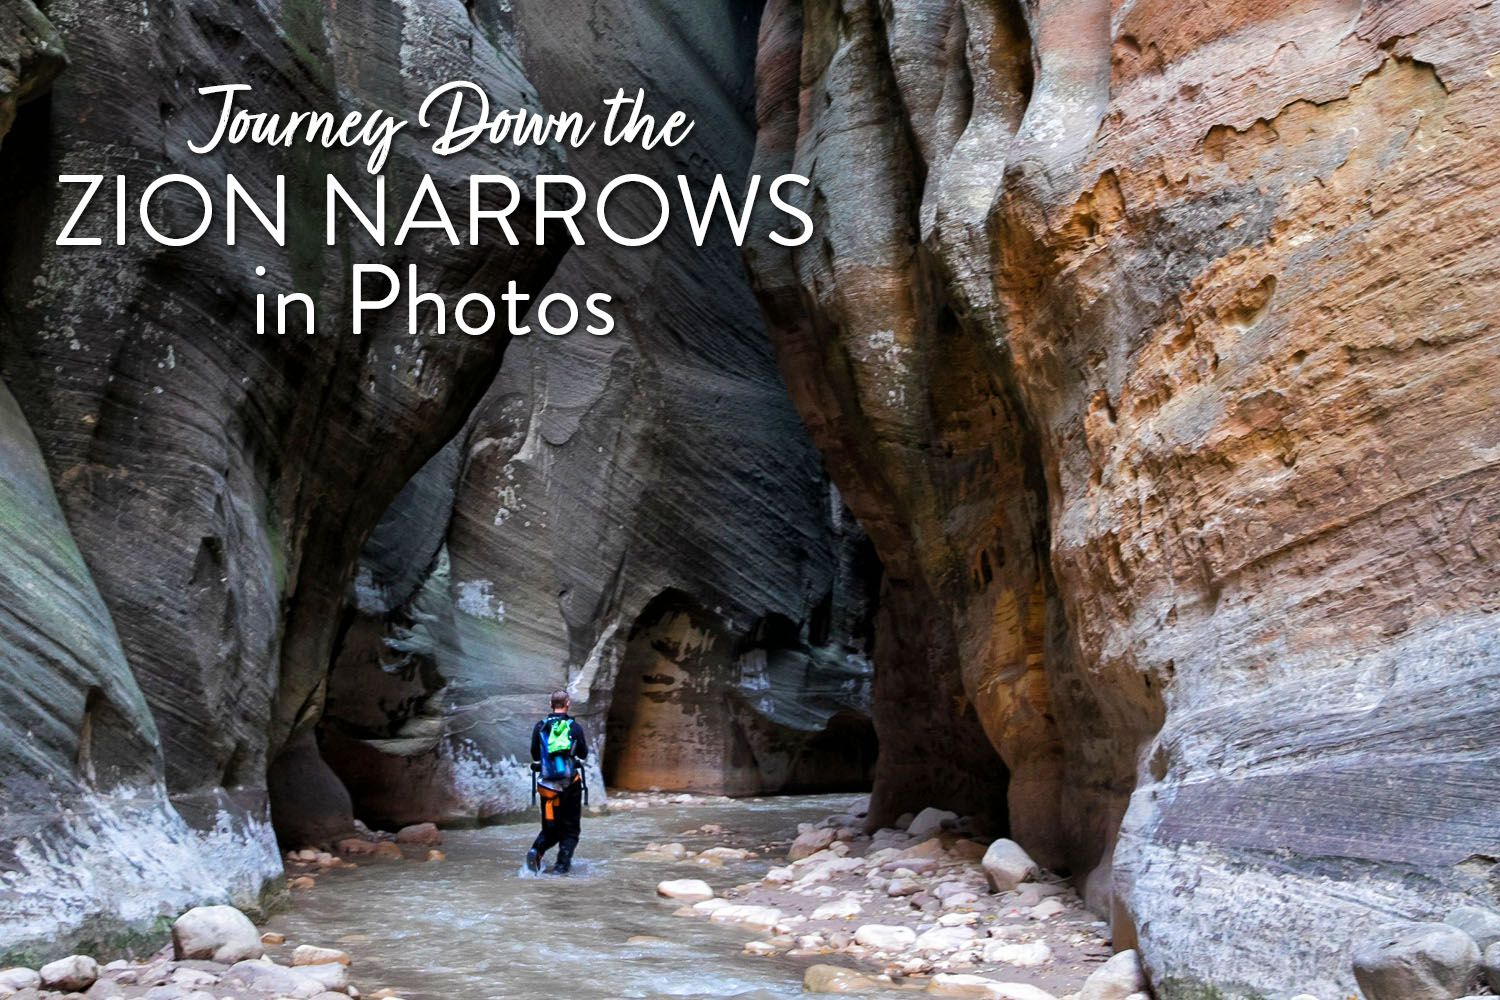 Zion Narrows in Photos